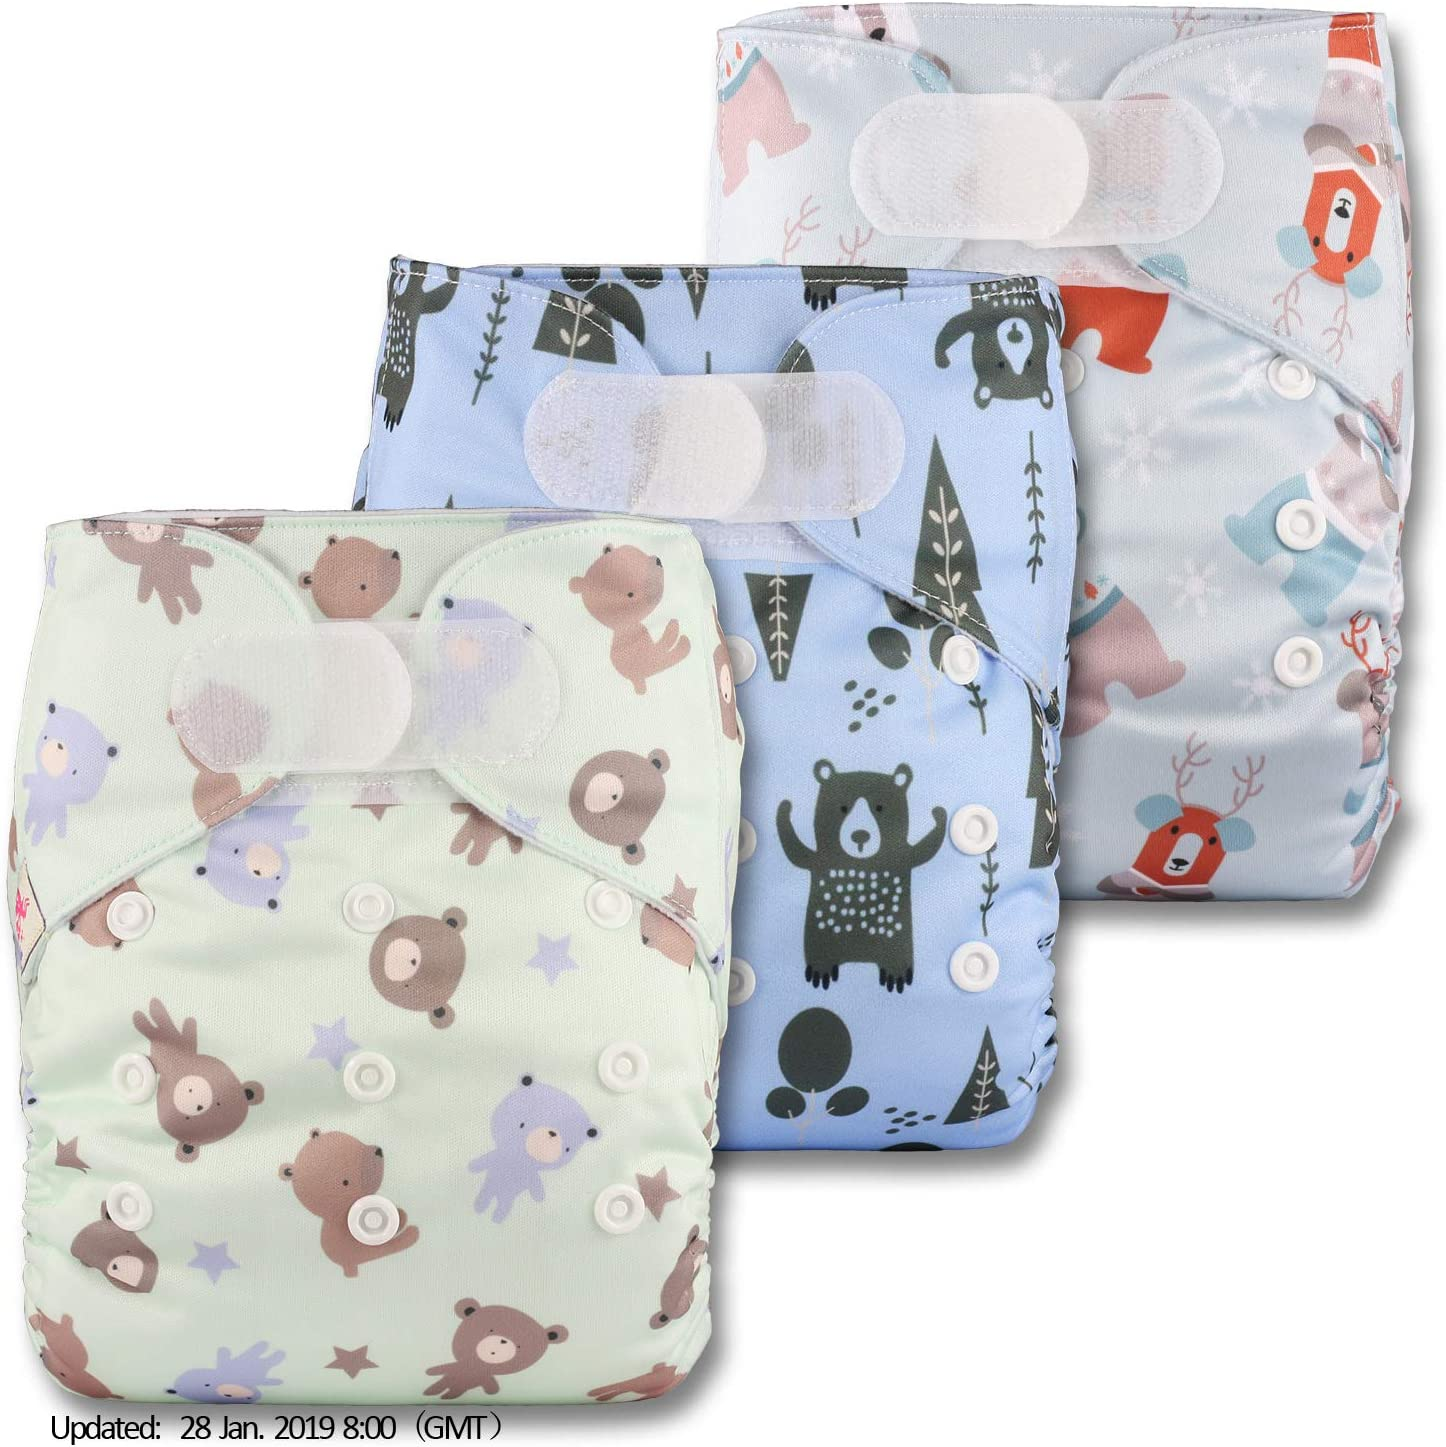 Reusable Pocket Cloth Nappy with 6 Bamboo Charcoal Inserts Littles /& Bloomz Fastener: Hook-Loop Set of 3 Patterns 310